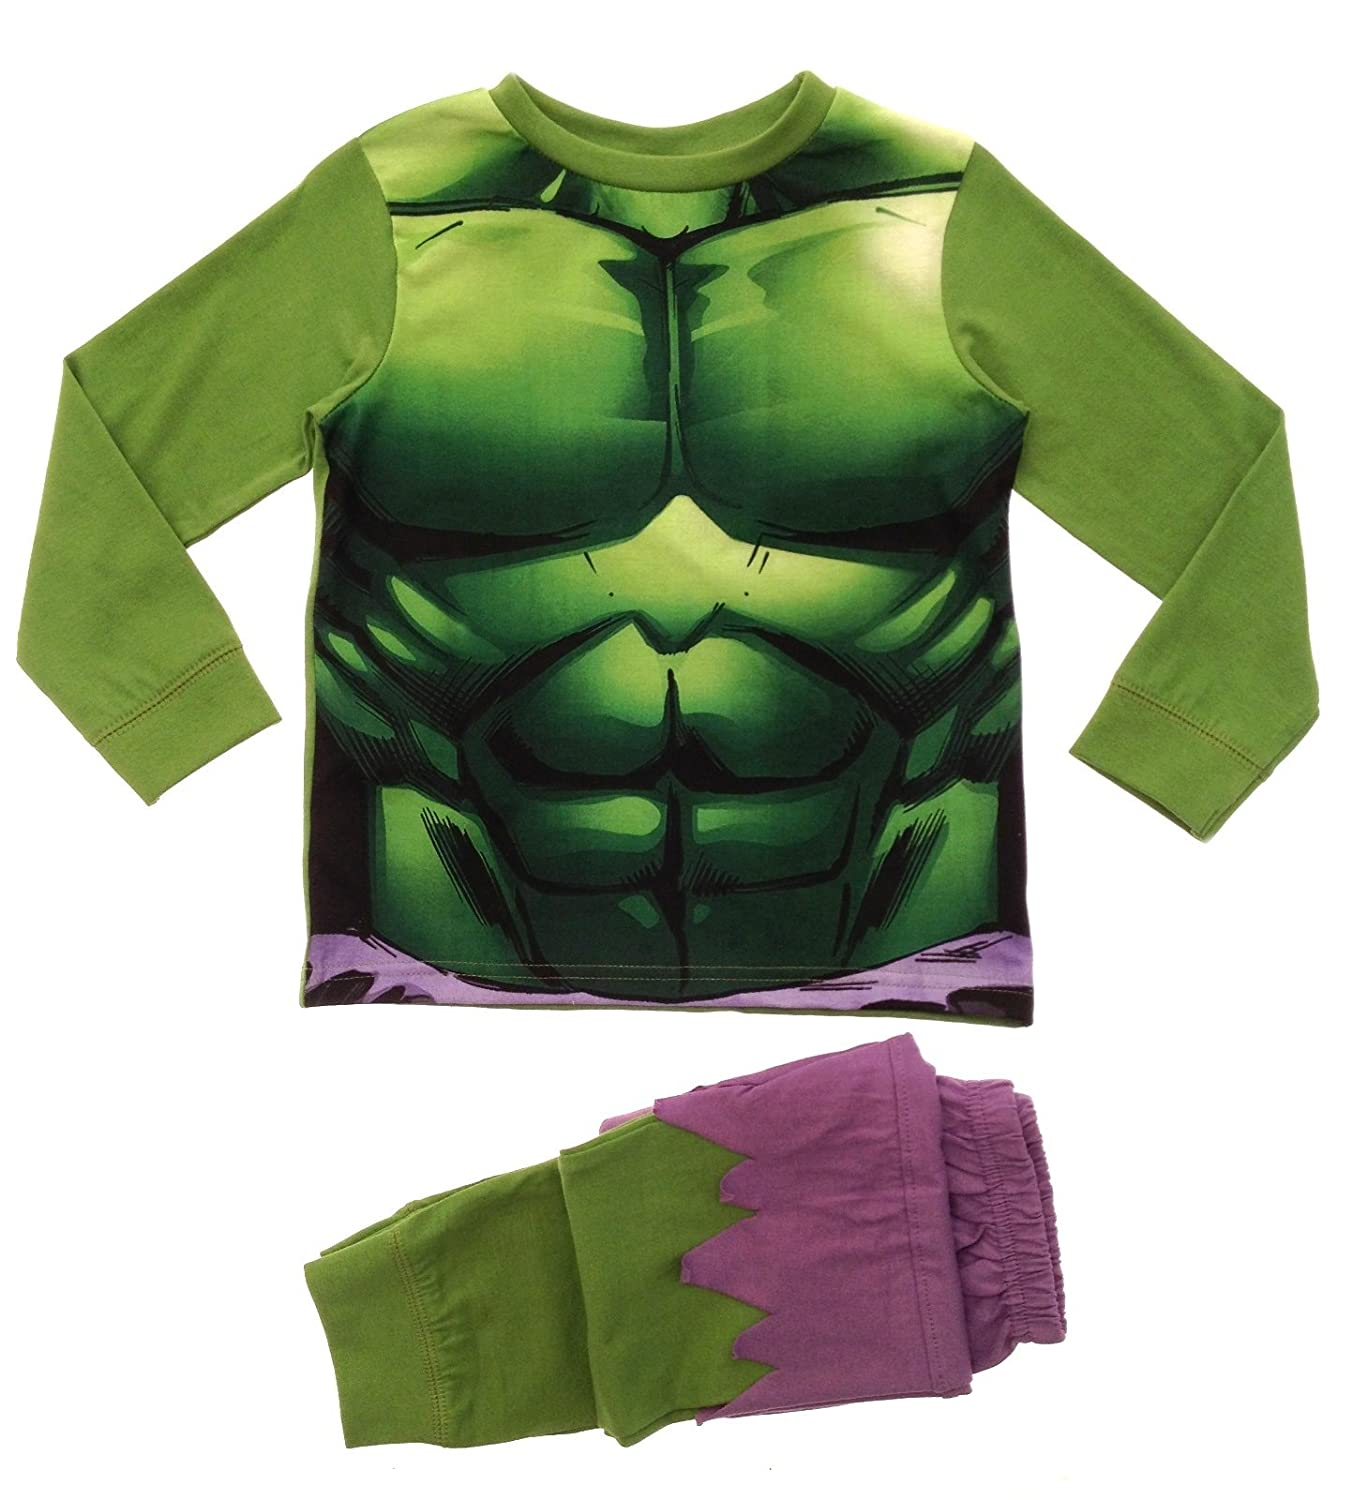 Lora Dora Big Boys' Marvel Avengers Inc Ible Hulk Pyjamas Pj Set 10269#22380#HULK#07/08